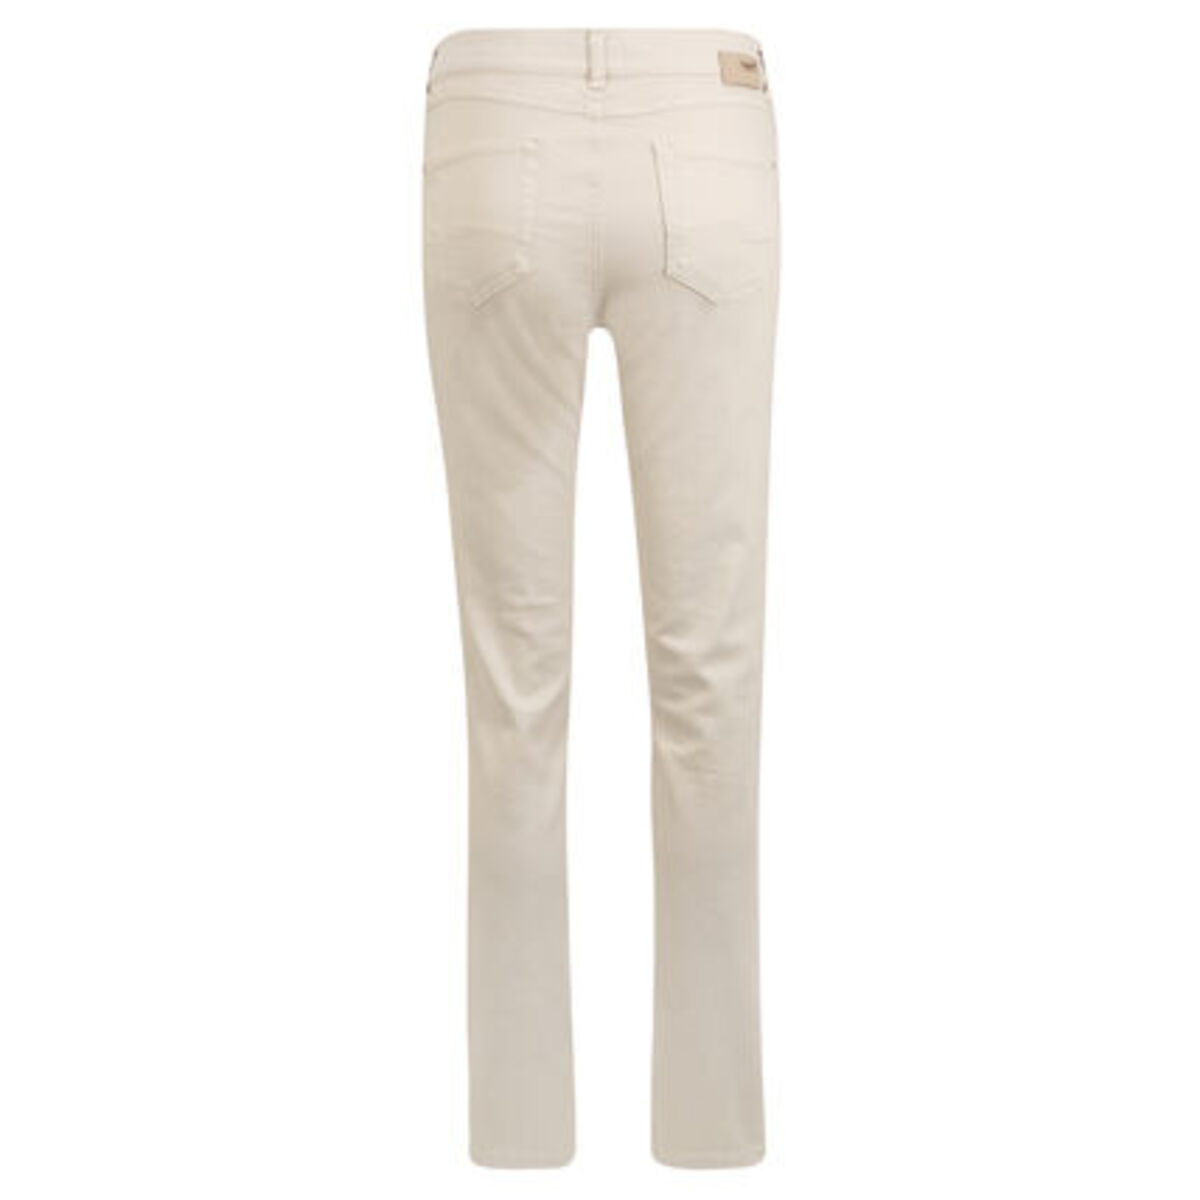 "Bild 3 von Angels Jeans ""Cici"", Regular Fit, Straight Leg, unifarben"